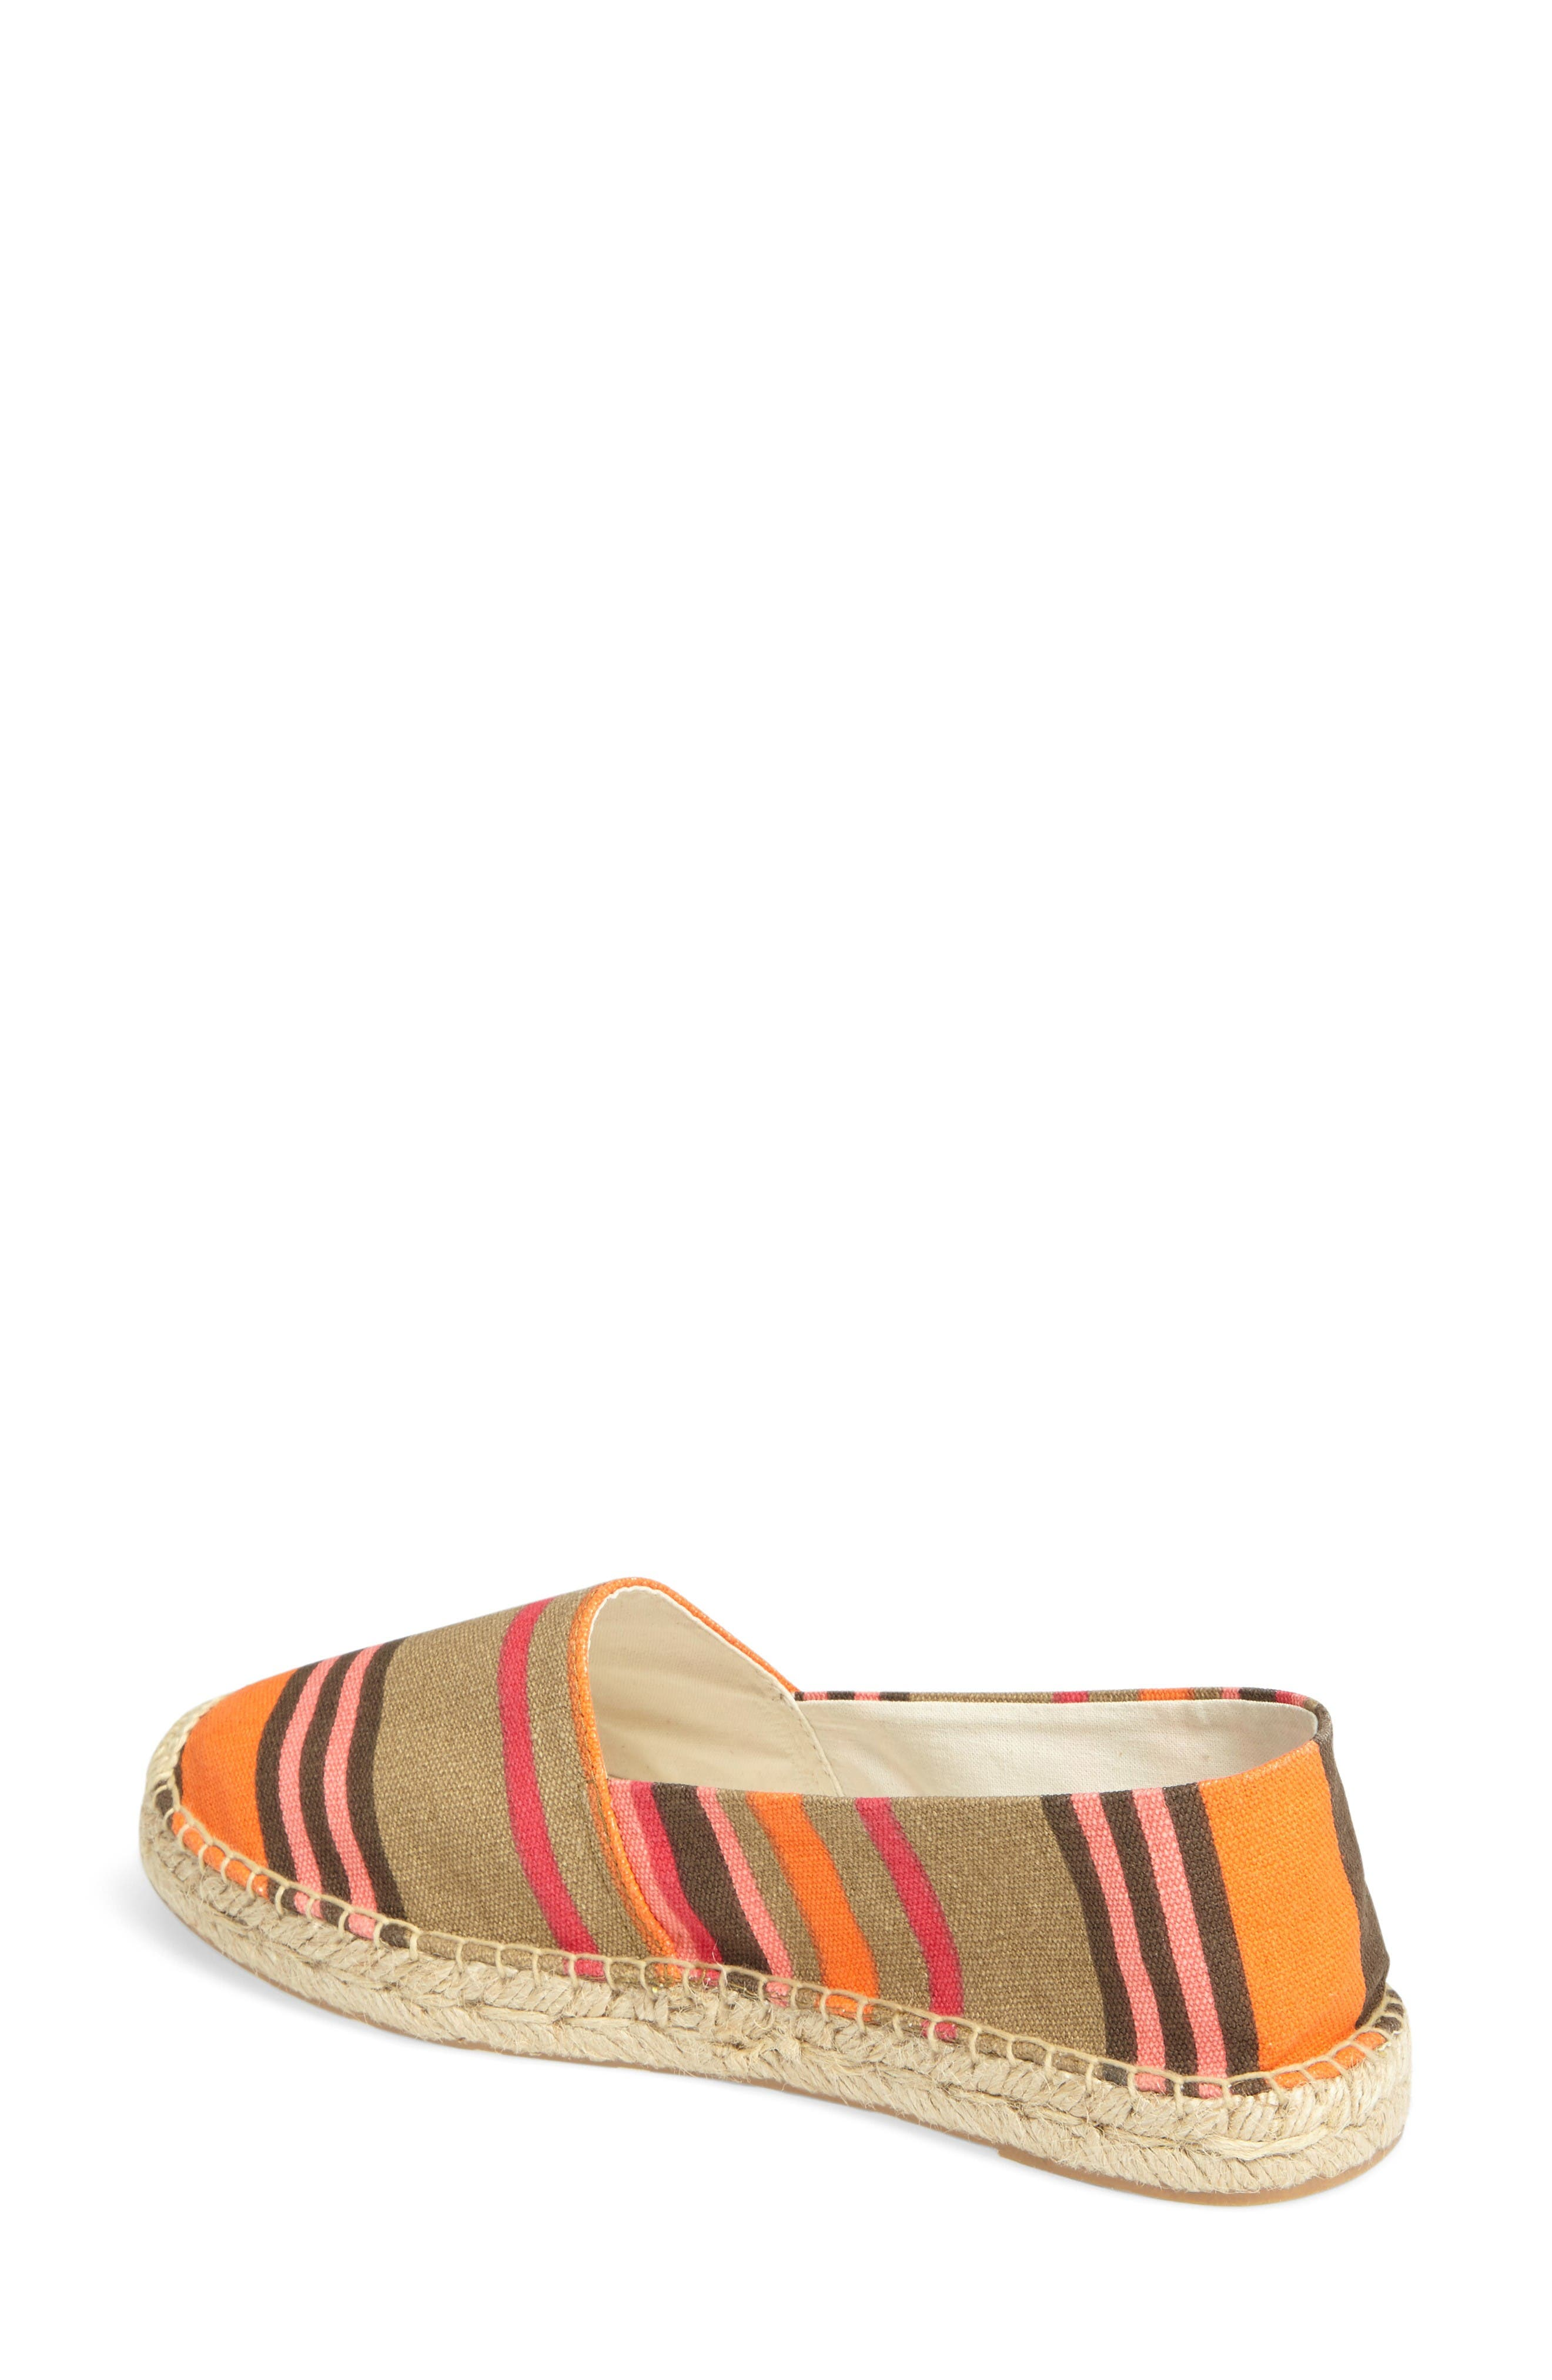 Alternate Image 2  - Sam Edelman Verona Espadrille (Women)